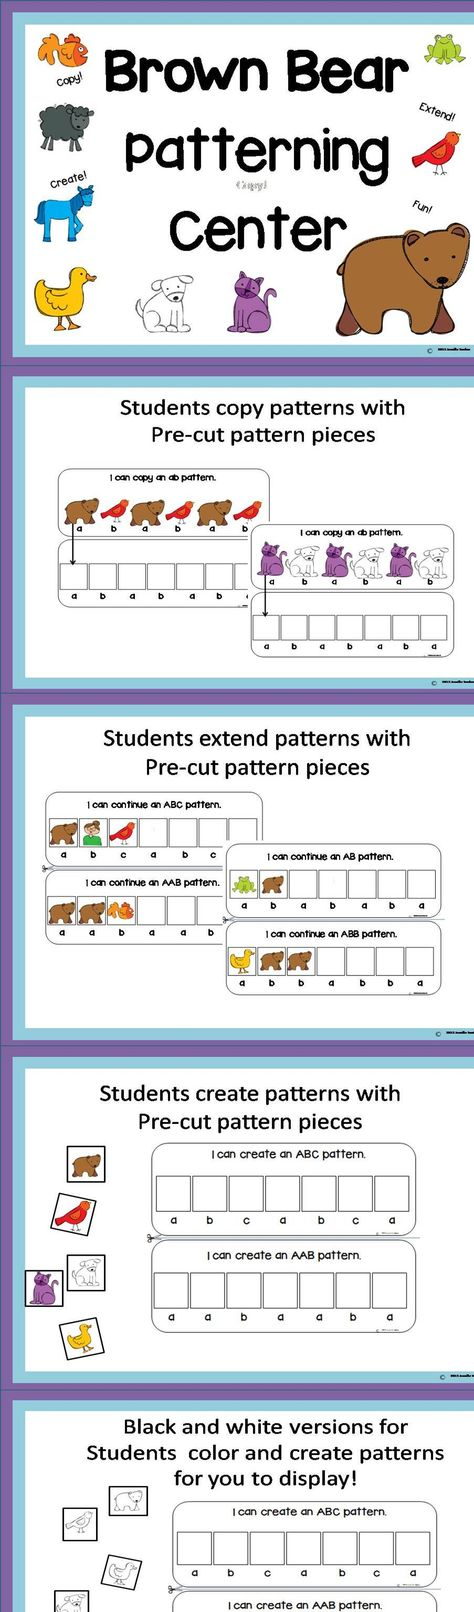 Brown Bear Patterning Center copy patterns, extend patterns and create patterns AB, ABB, AAB, ABC